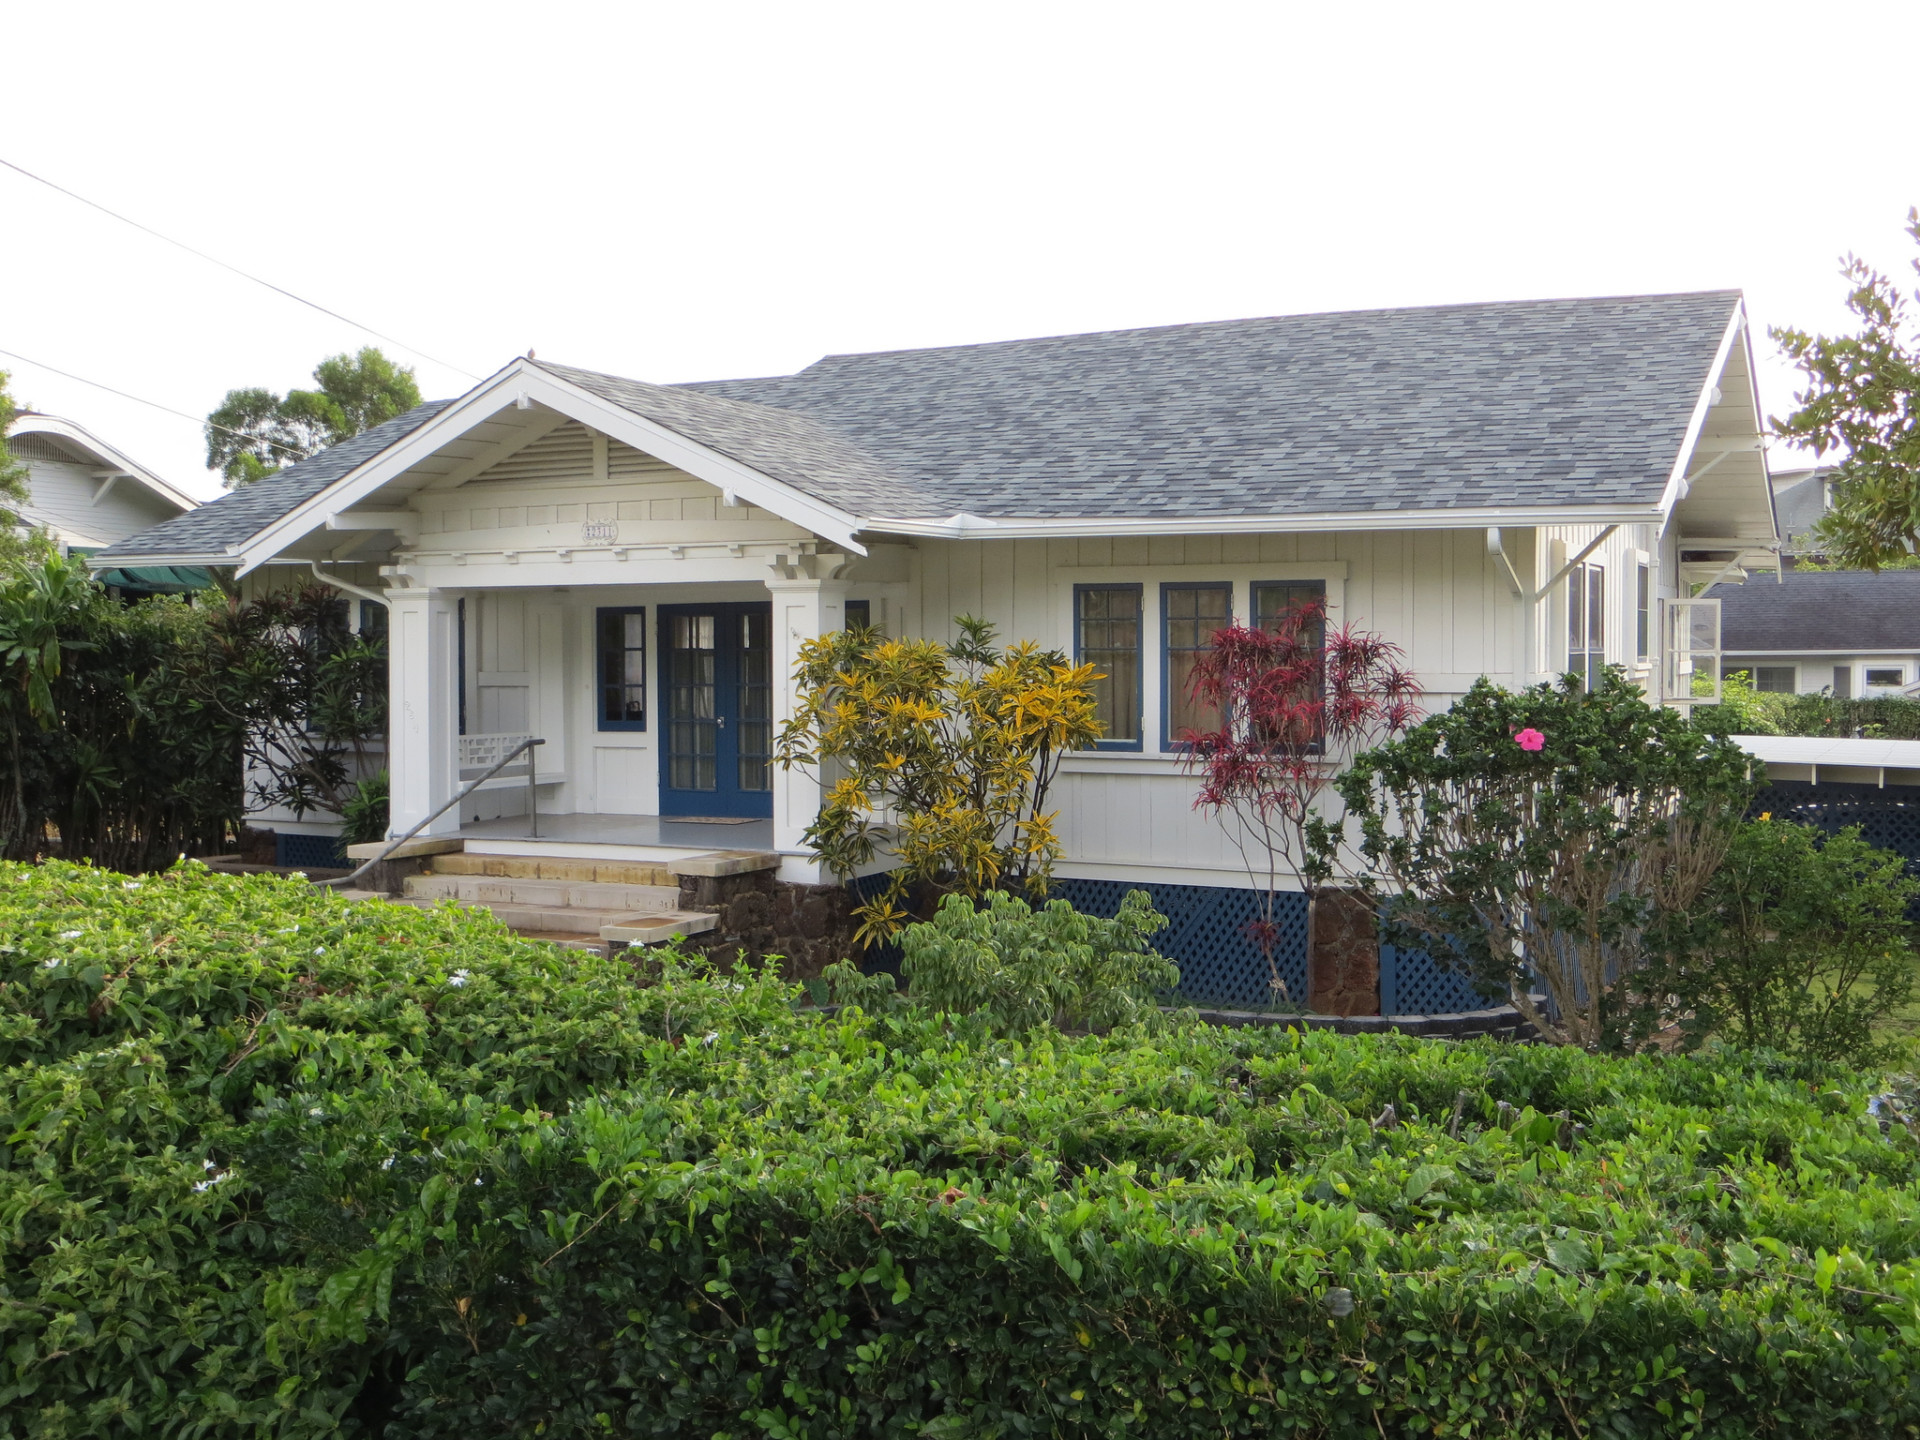 2311 Armstrong Street/ William Ninde Chaffee House